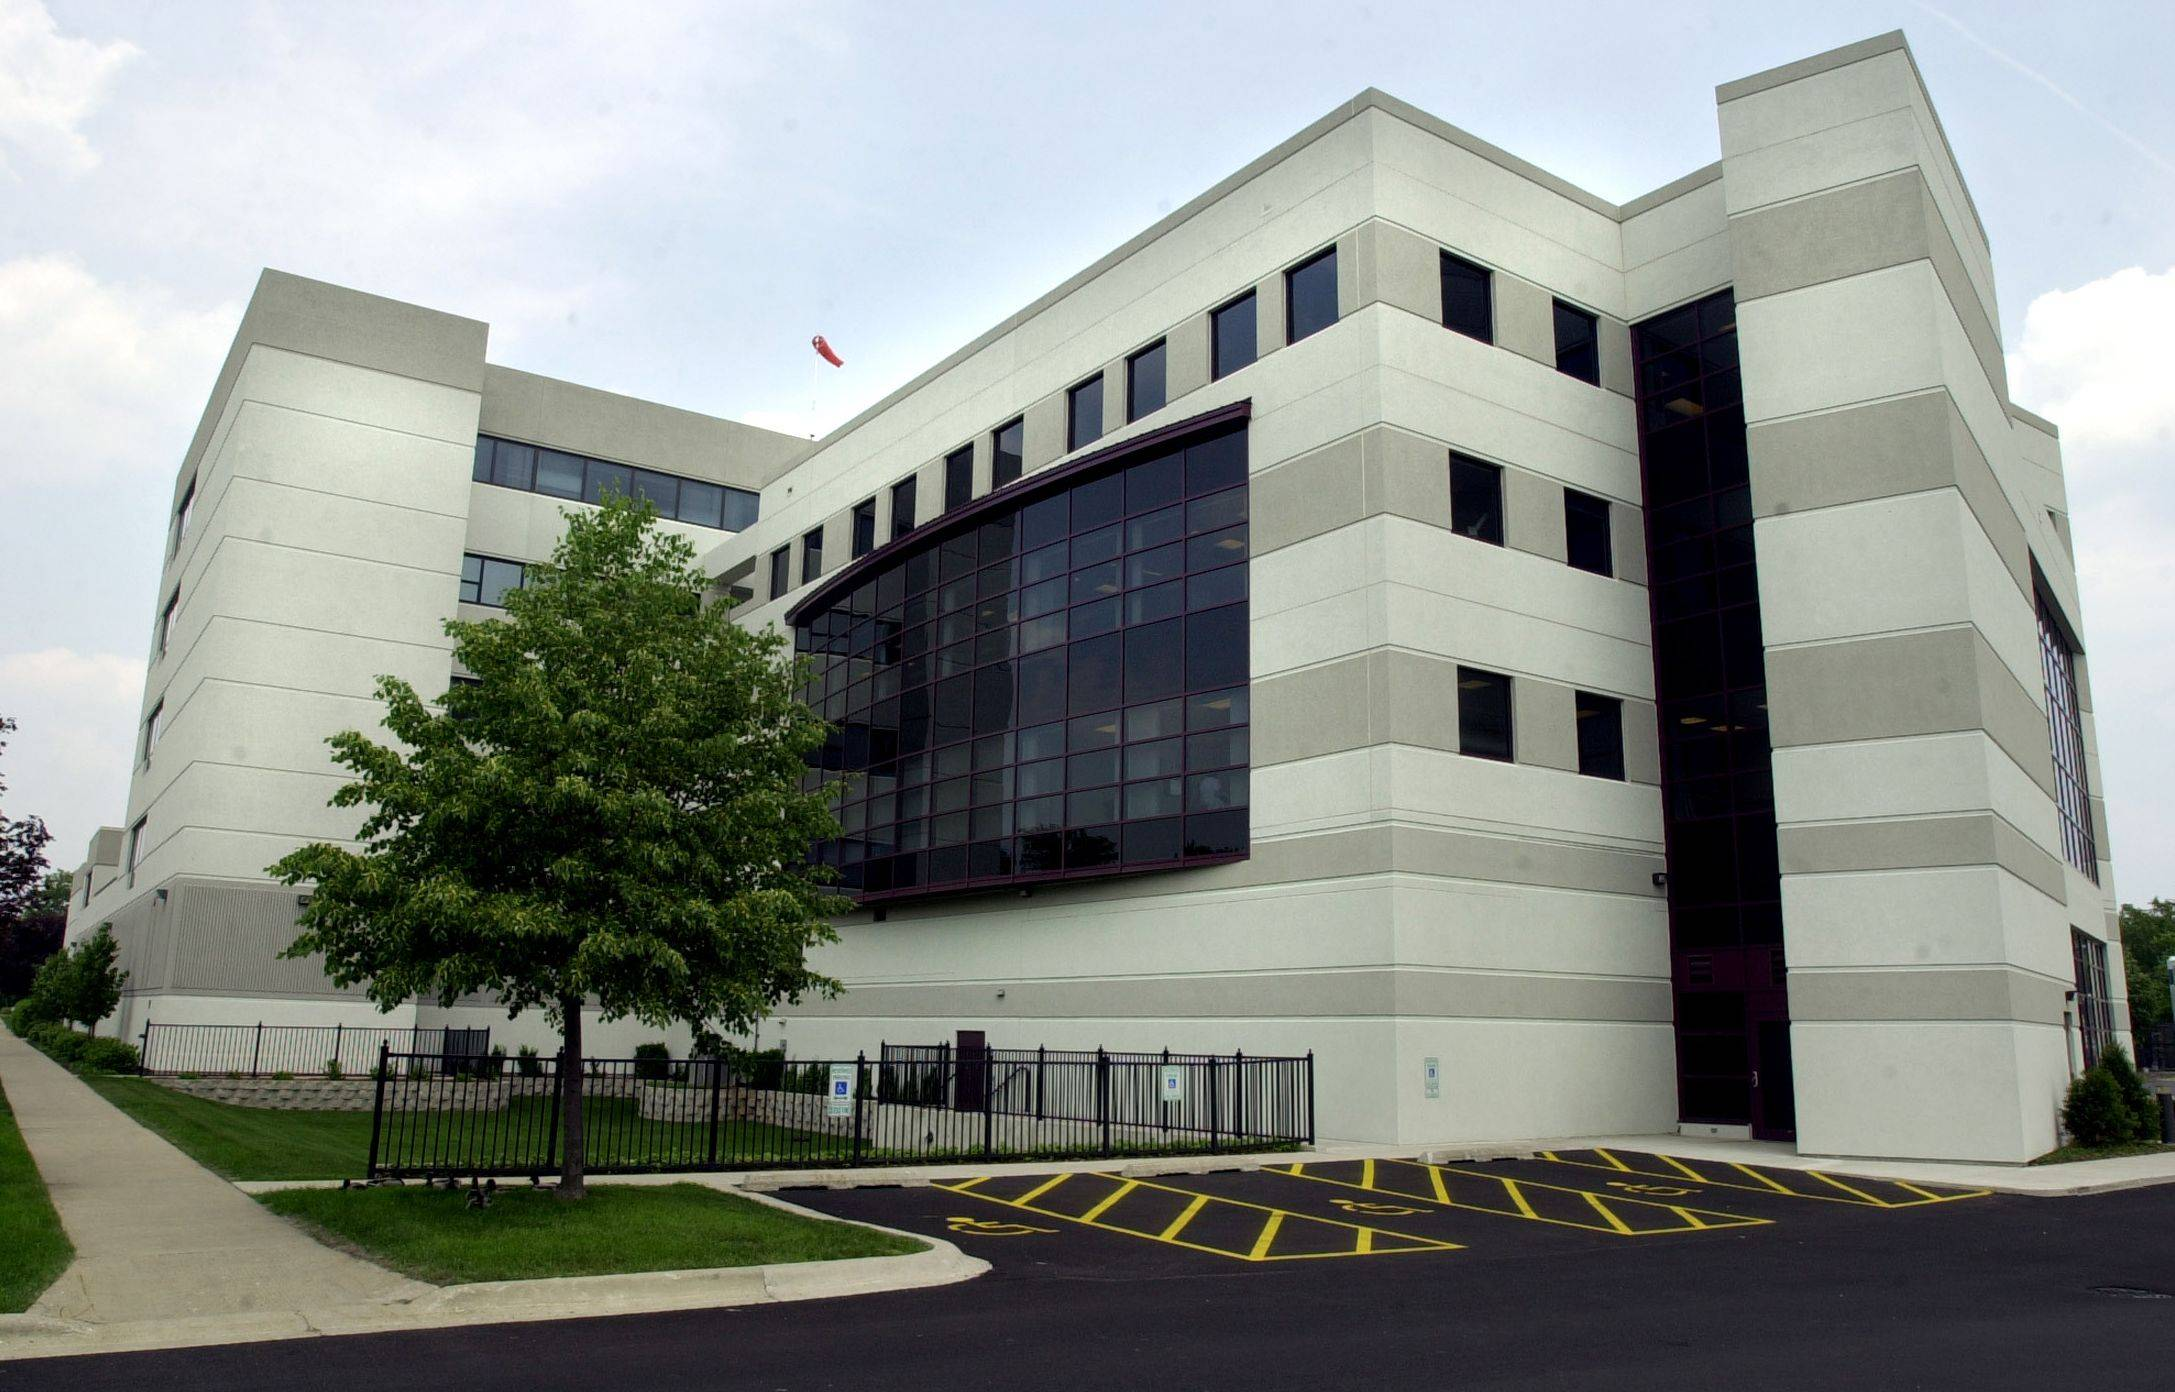 Cancer Treatment Centers of America's Midwest Regional Medical Center in Zion will expand while the firm's headquarters is leaving Schaumburg for Florida.